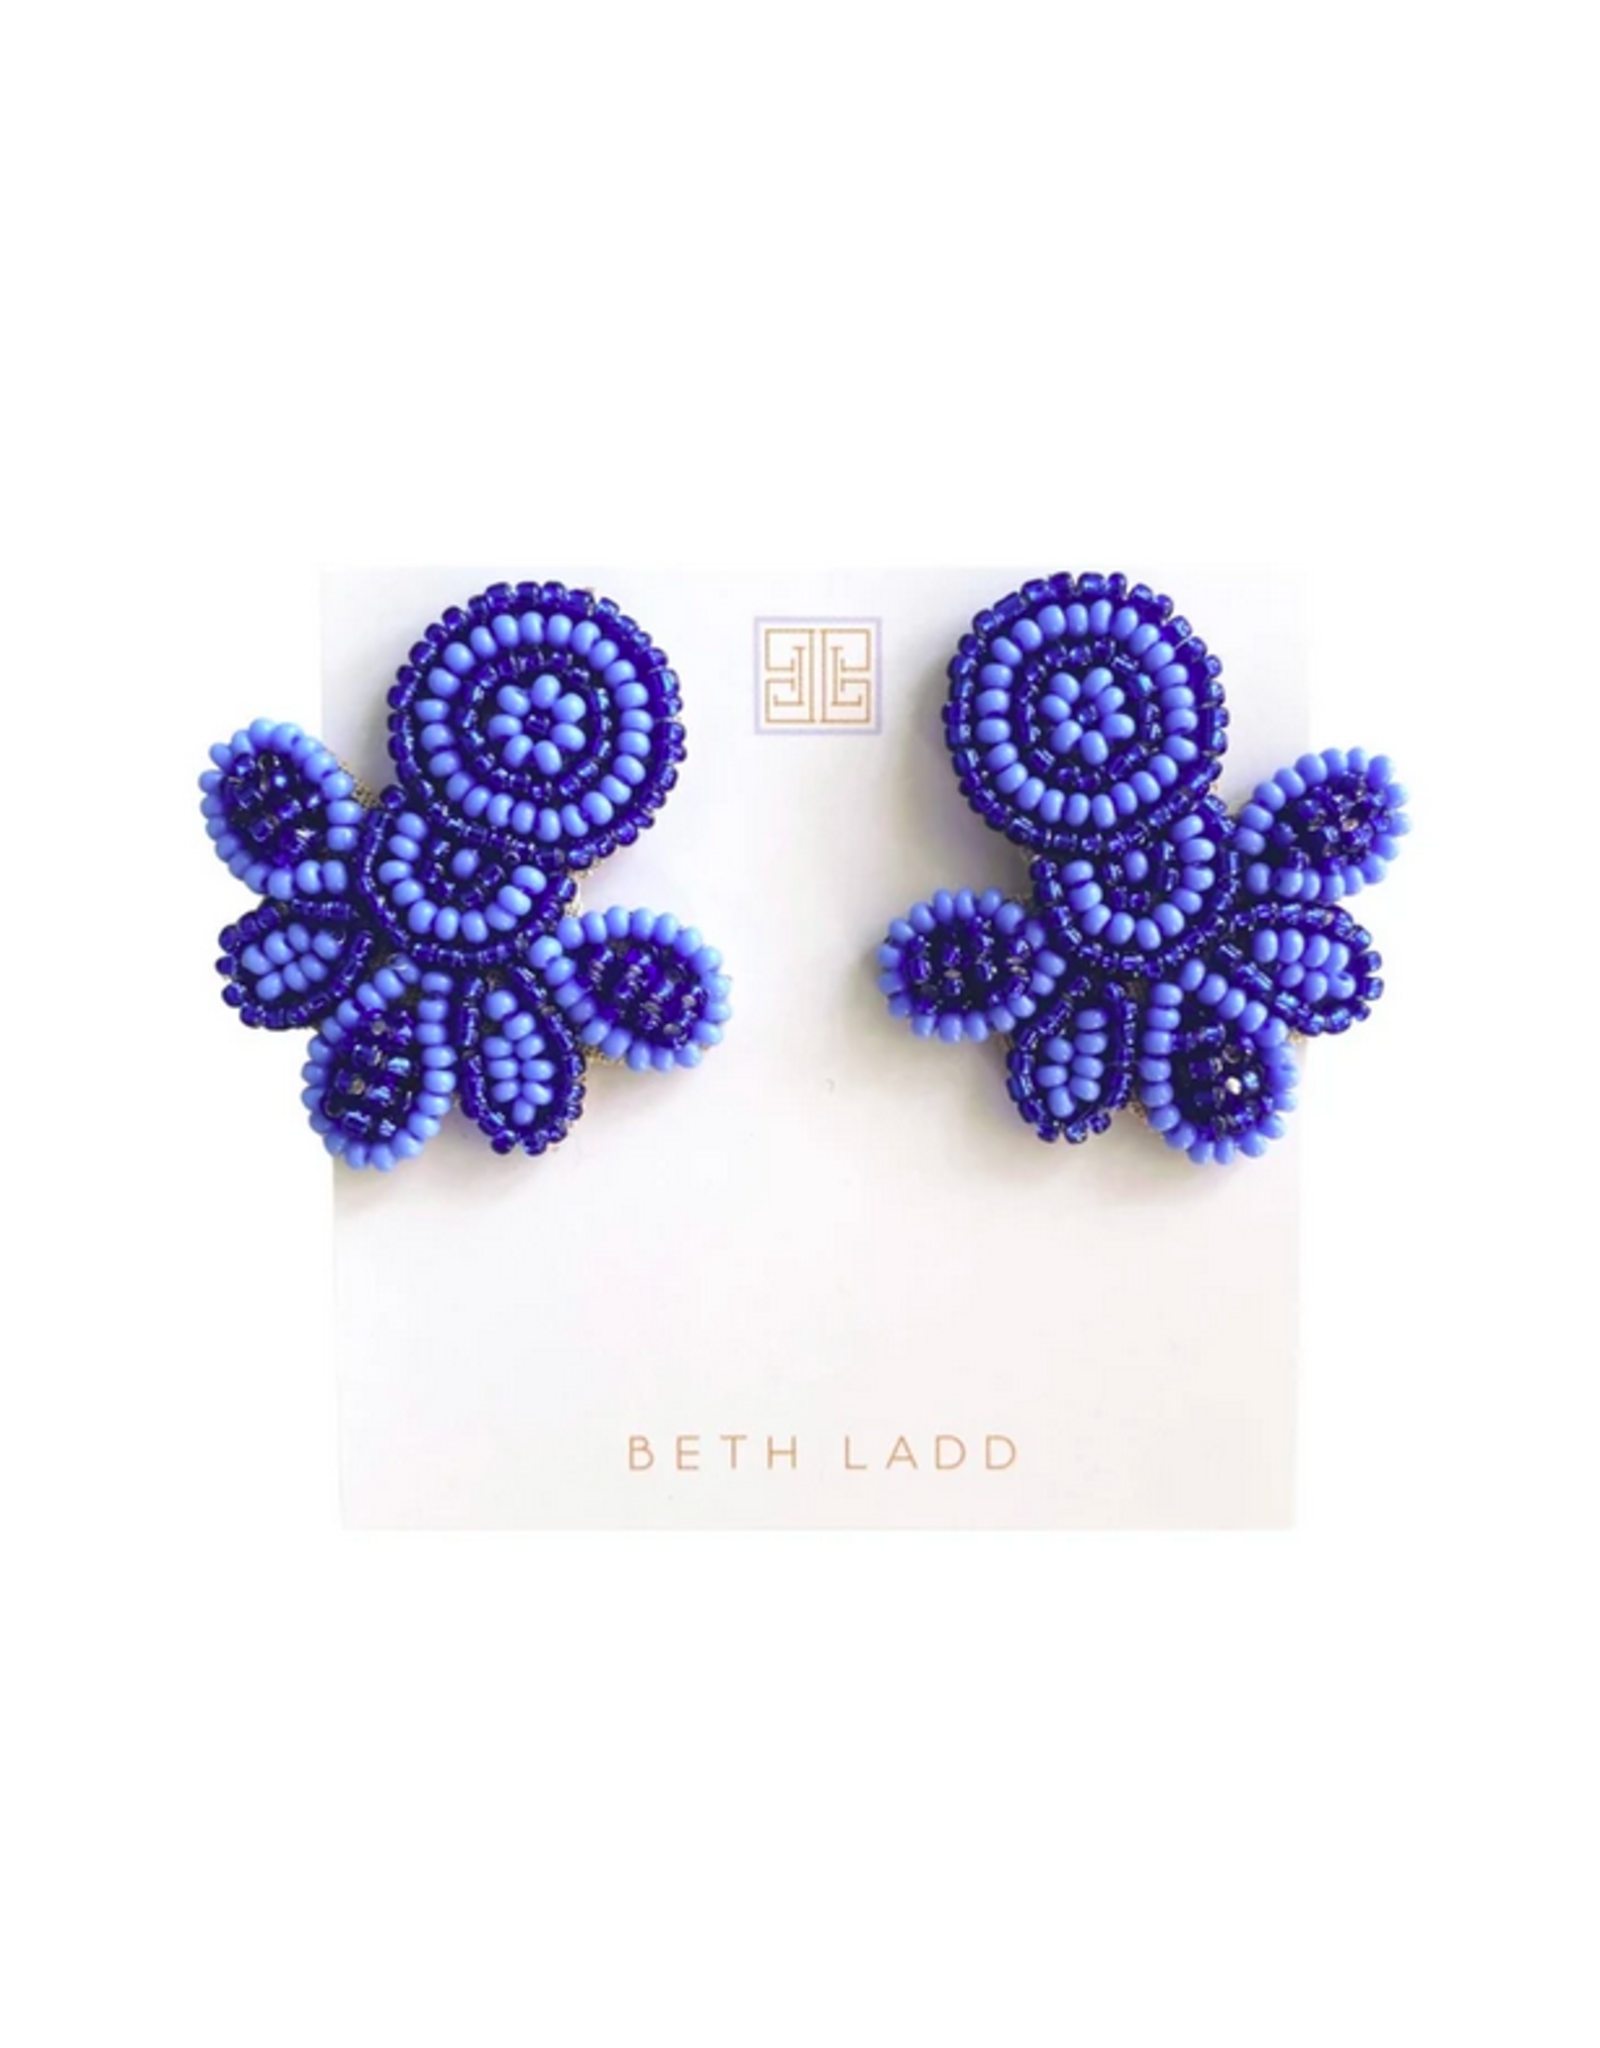 Beth Ladd Collection Love Studs in Navy/Periwinkle by Beth Ladd